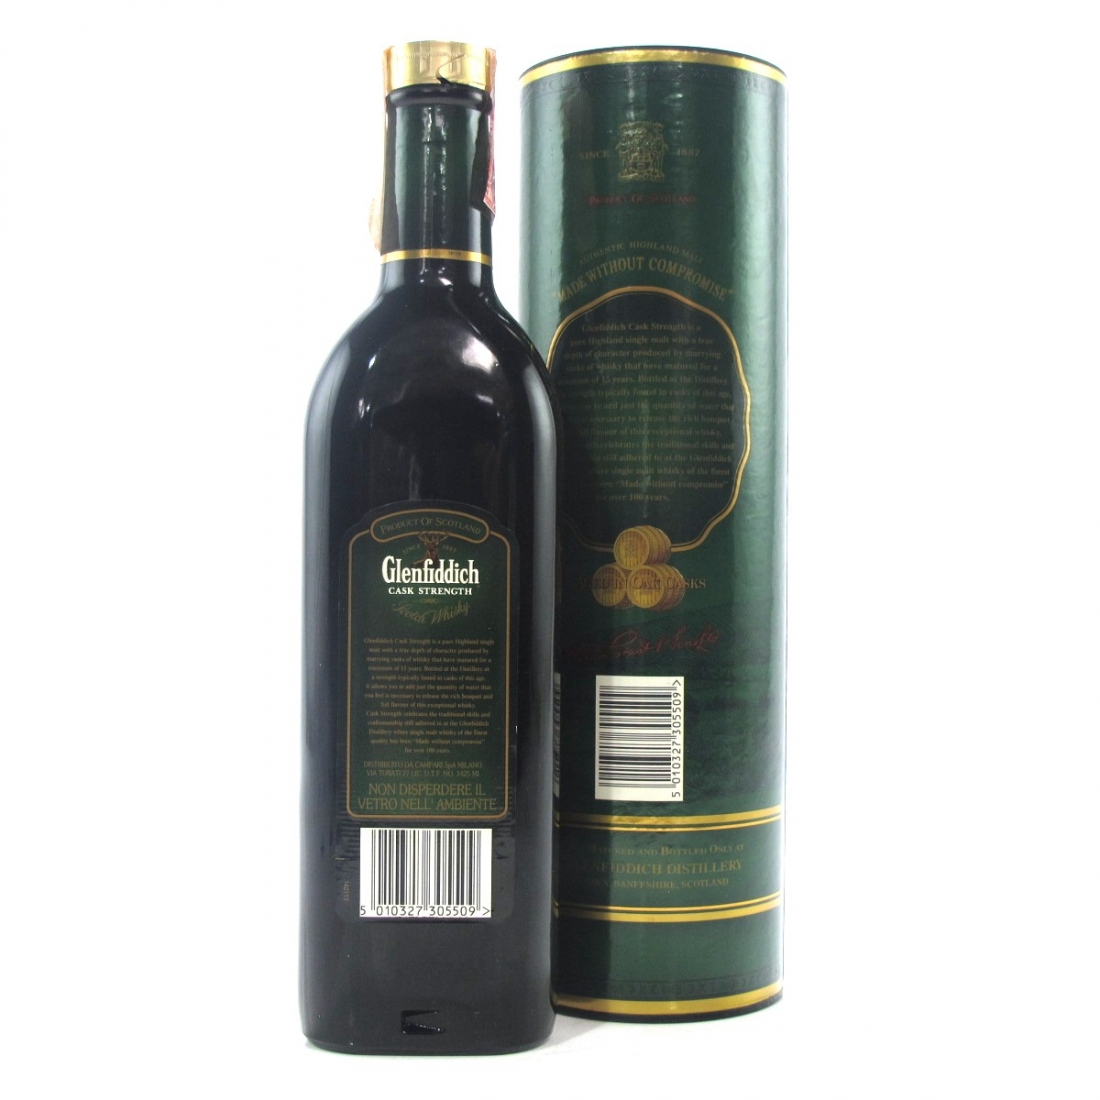 Glenfiddich 15 Year Old Cask Strength